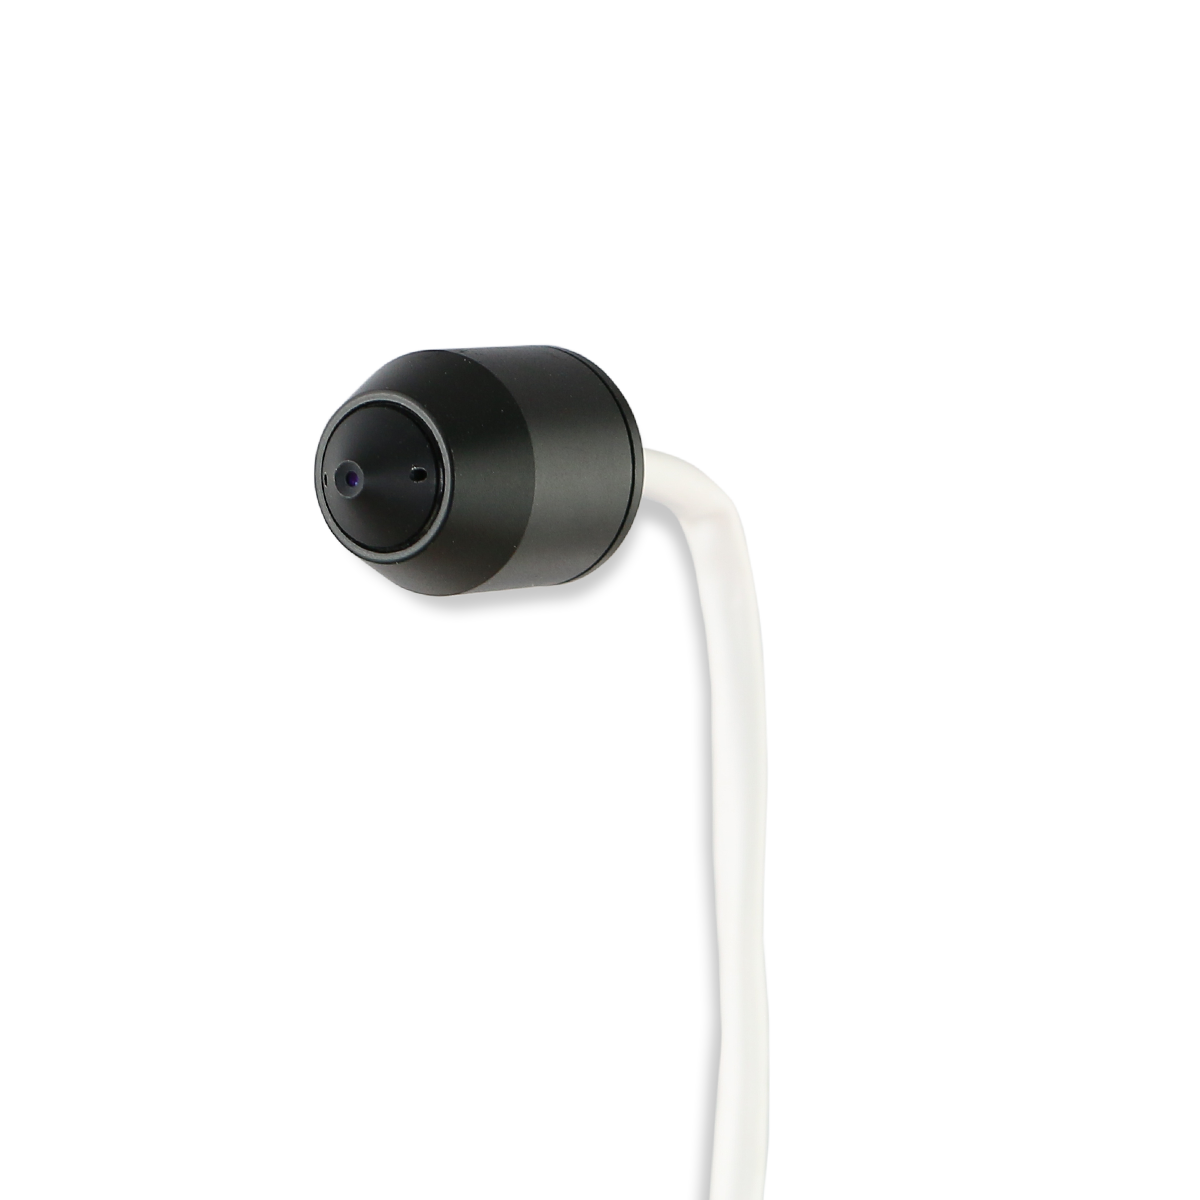 Titathink hidden camera lens accessories